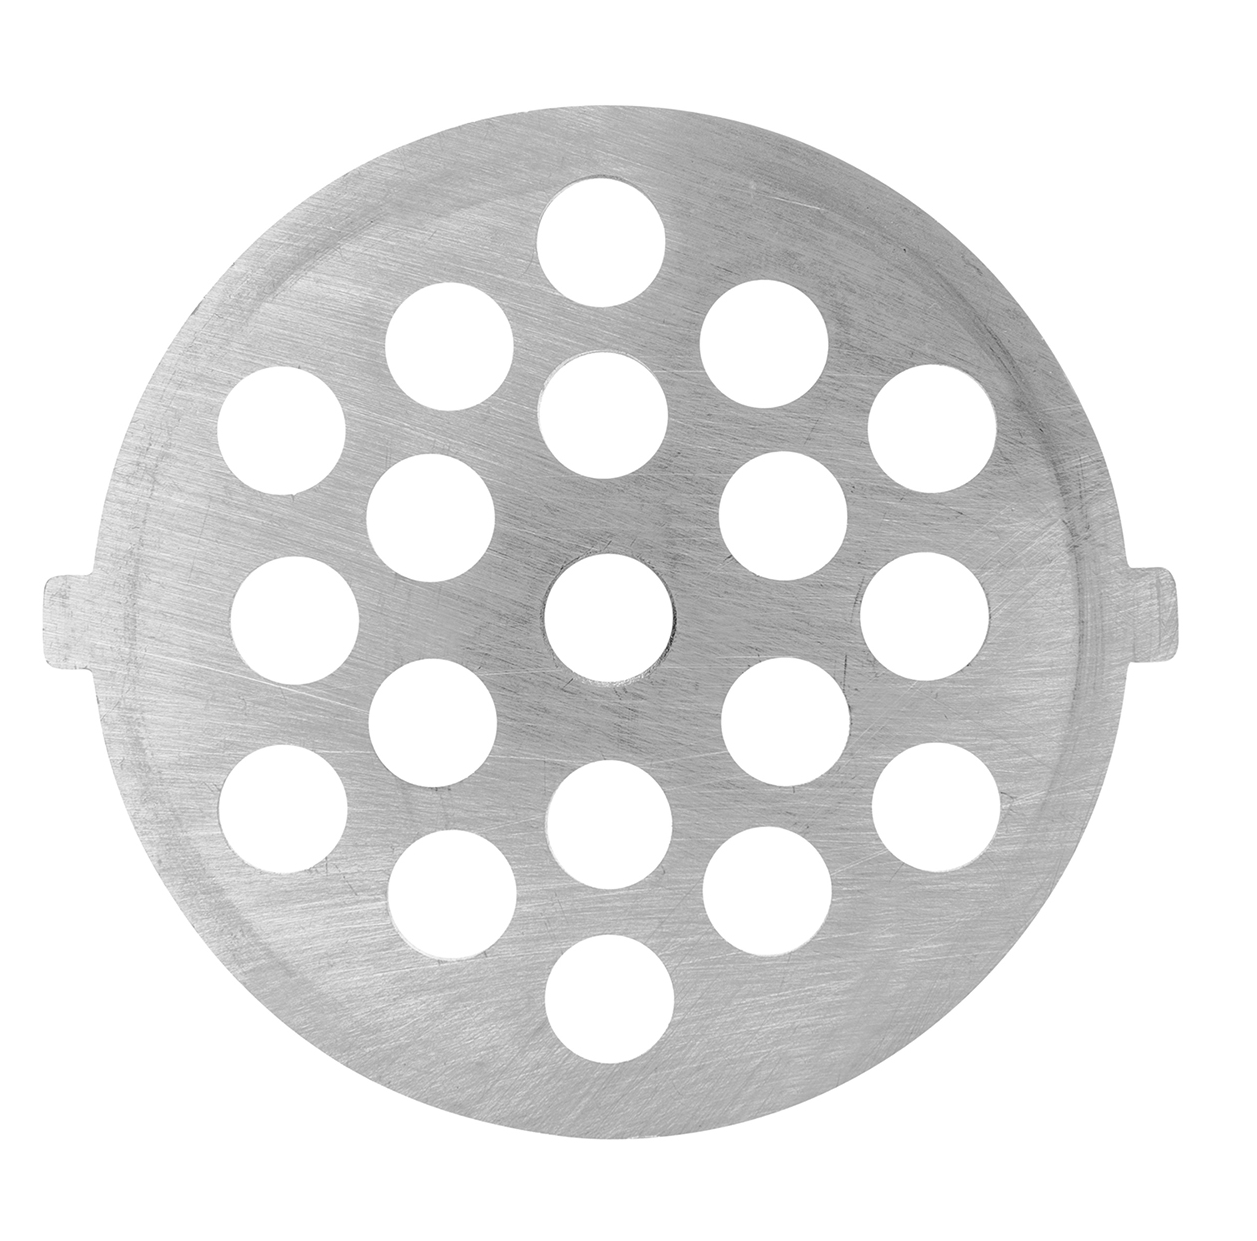 Luvele, 8mm Stainless Steel Cutting Plate for the Luvele Meat Grinder,Meat Grinder